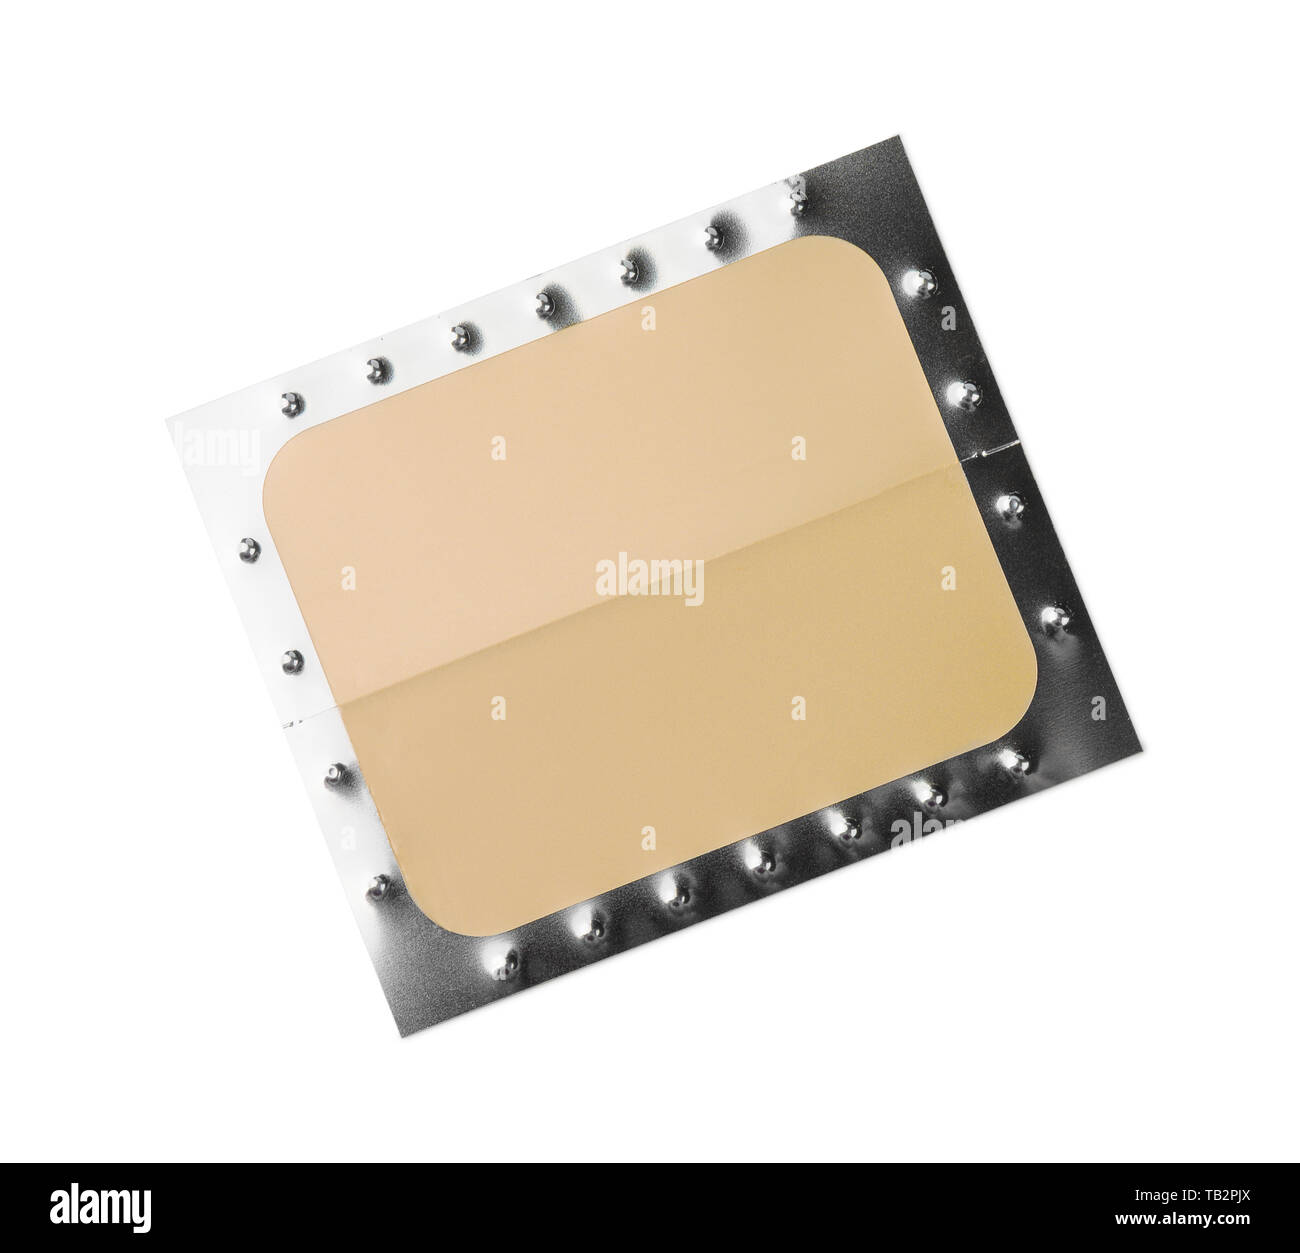 Top view of unused nicotine patch isolated on white - Stock Image